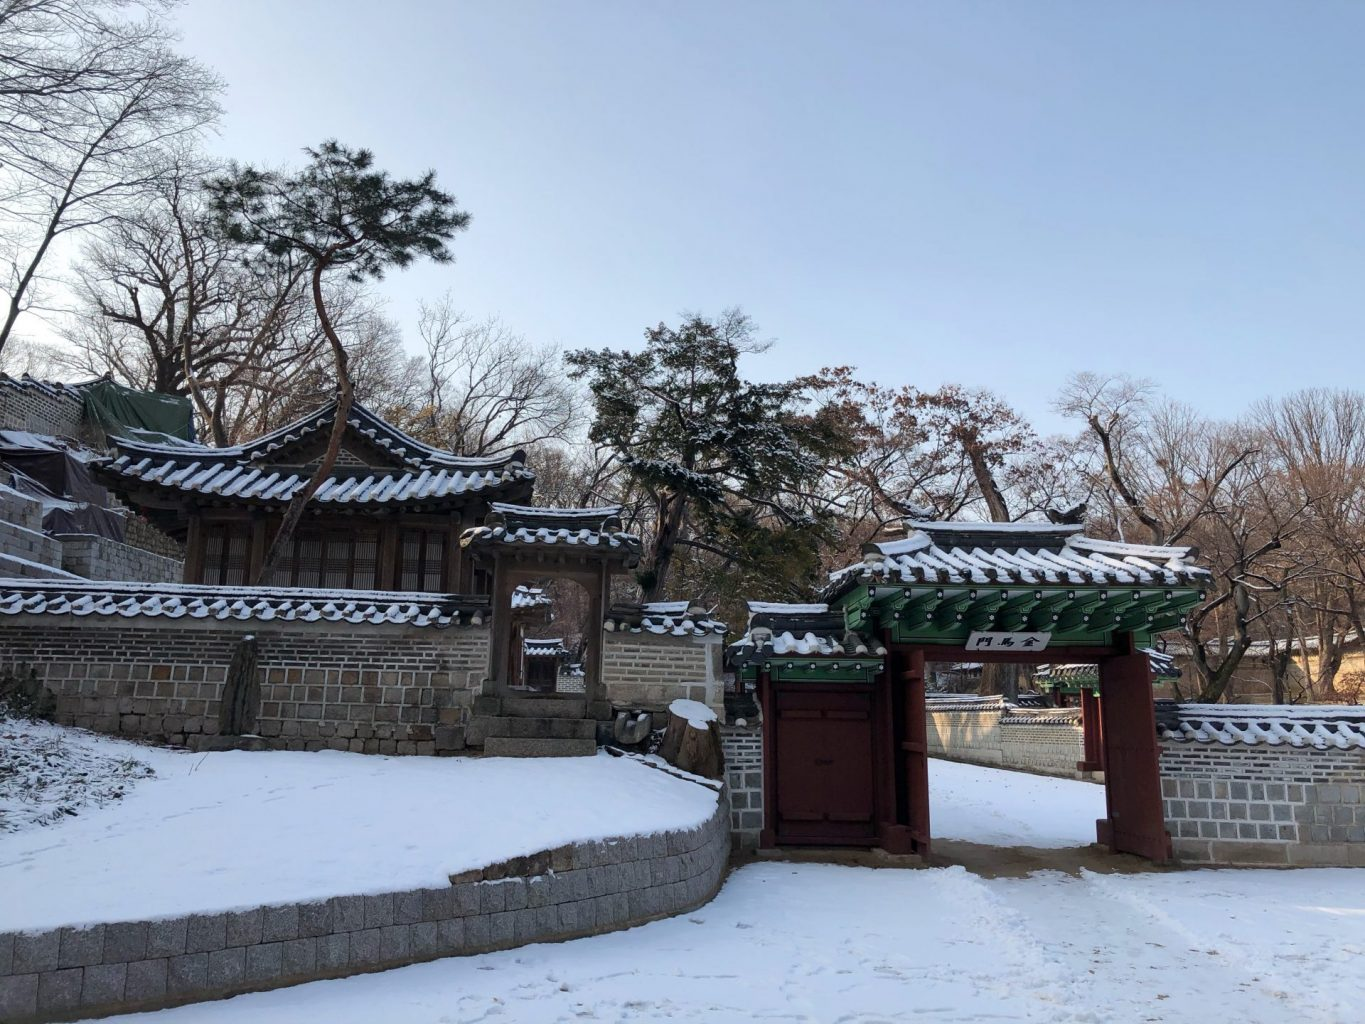 A visit to the Secret Garden of Changdeokgung Palace during snowfall